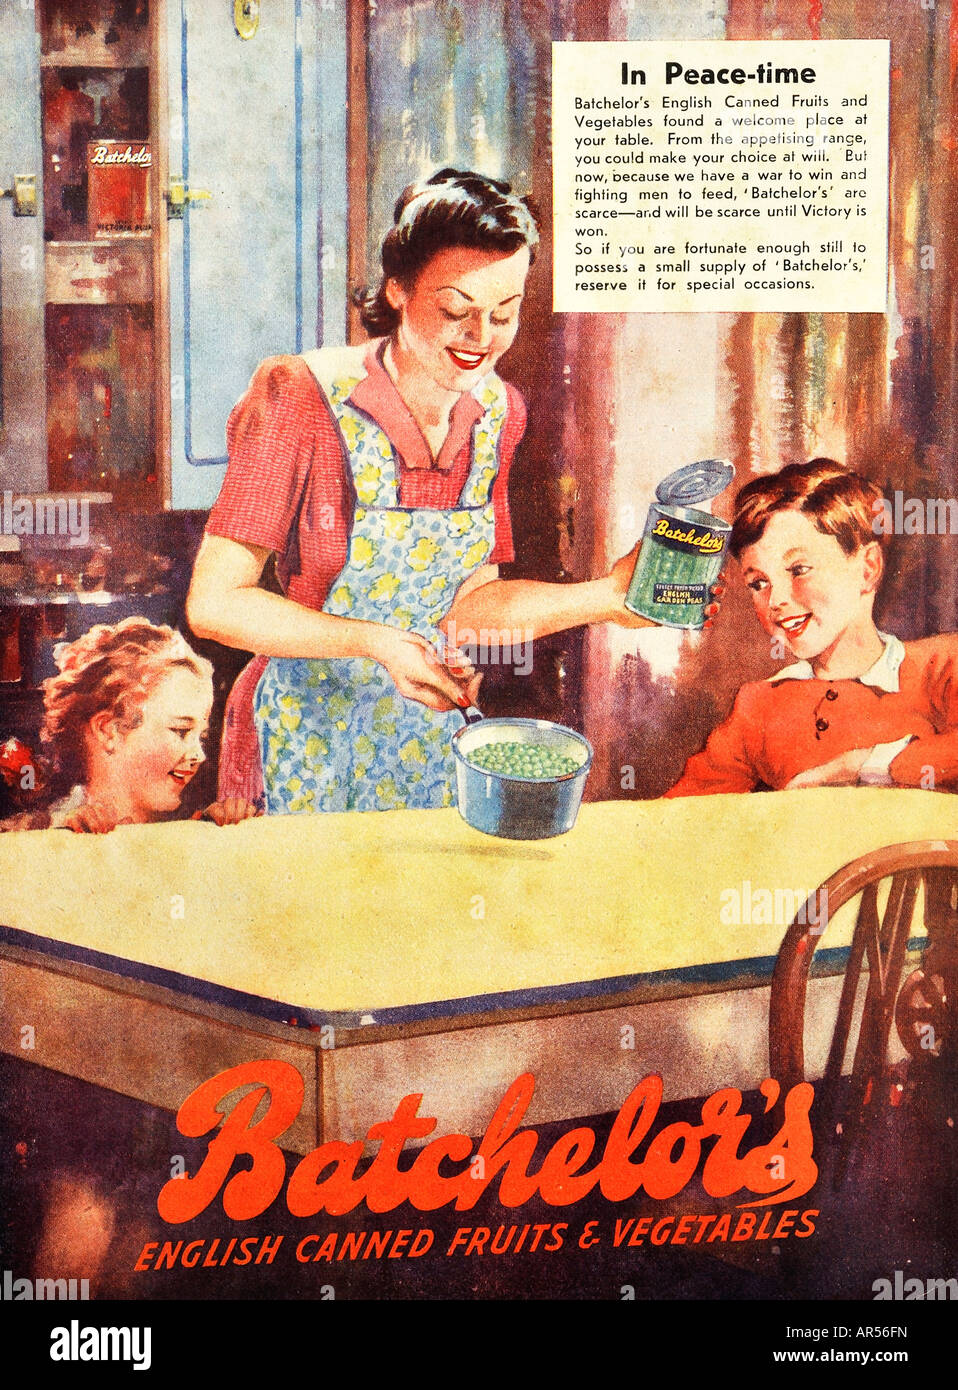 1940s vintage 1944 wartime advertisement for Batchelor's canned friut and vegetables For Editorial Use Only - Stock Image